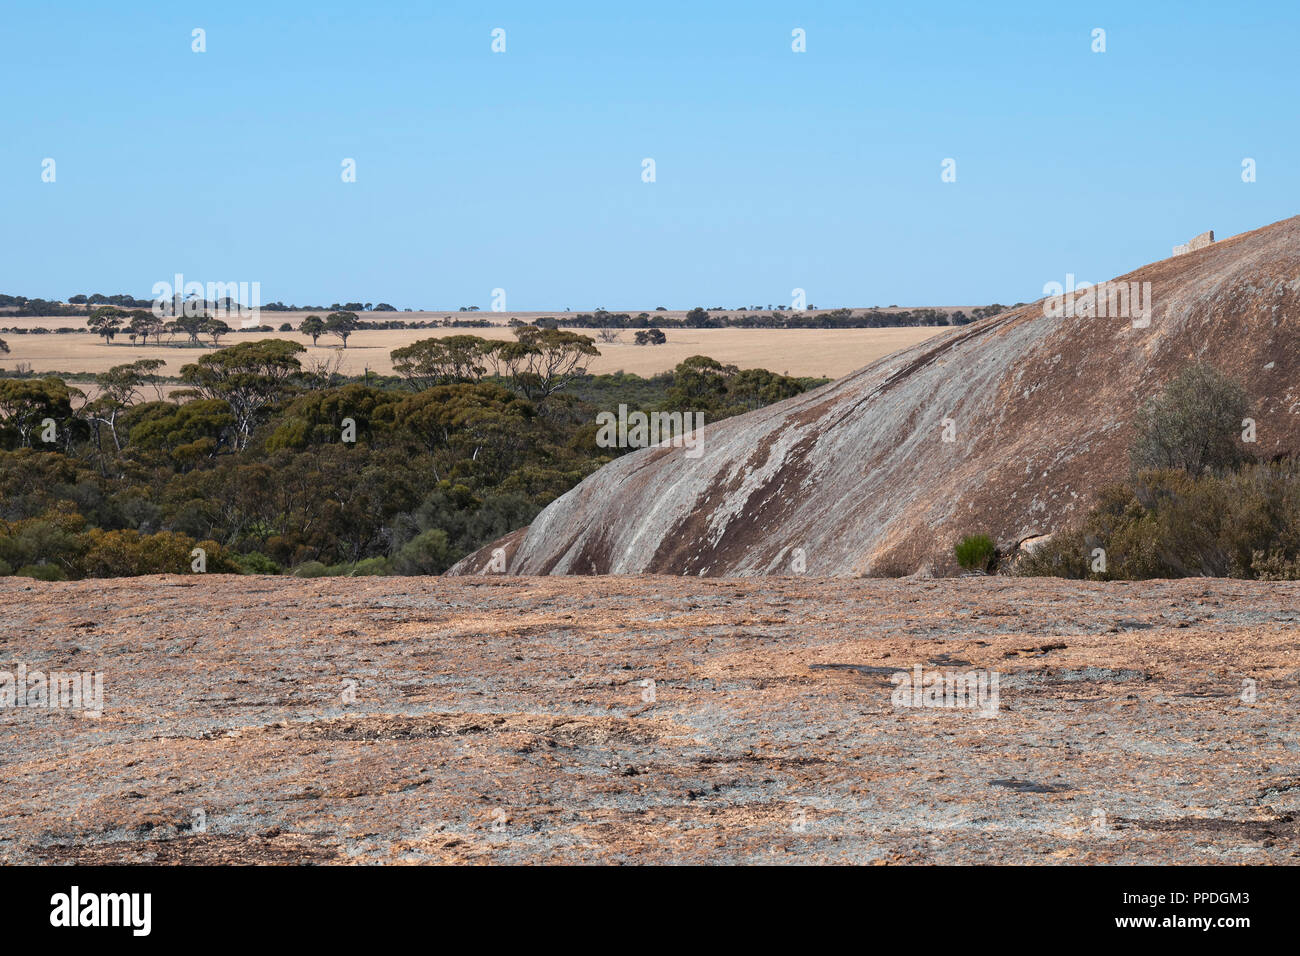 Hyden Australia, Panorama from top of wave rock, with wheat fields in background - Stock Image